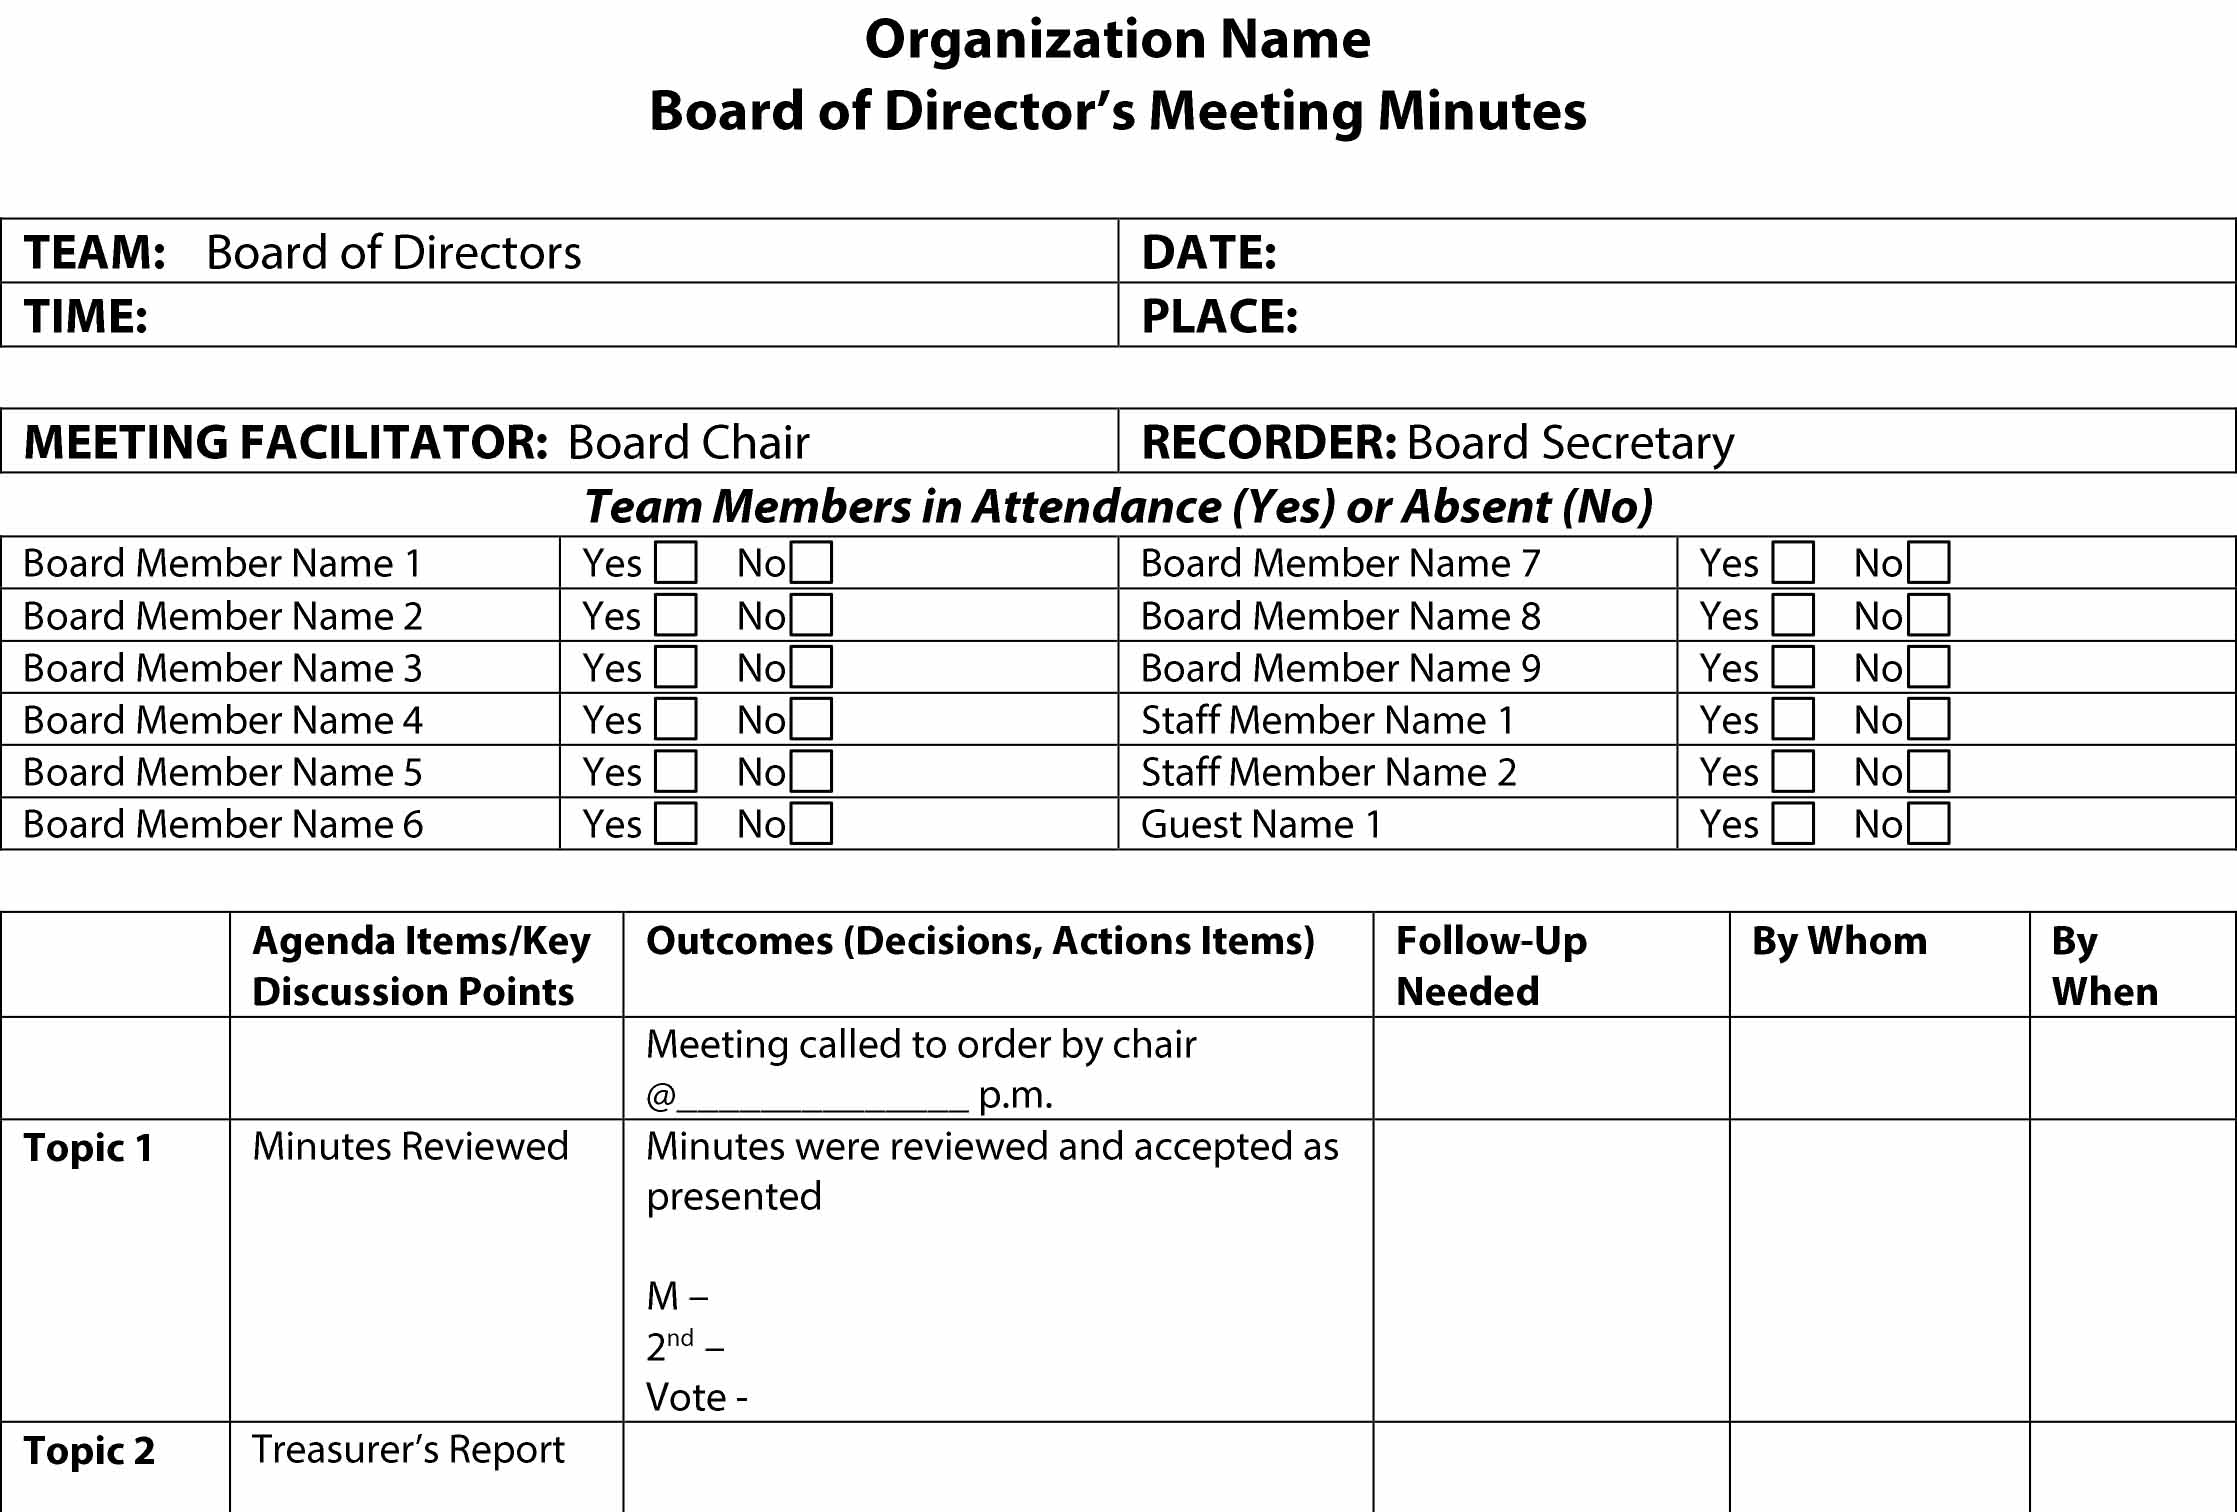 This template, very popular with the Board of Directors I worked with that adopted it has many nice features. The template is focused on follow-up action steps and has space to assign accountability for follow-up action-steps and deadlines for those steps. Be mindful that there are specific legal requirements for board minutes in some states and you will want to check your state's guidelines to make susre you are compliant. This template is also great for committee and task-force work.